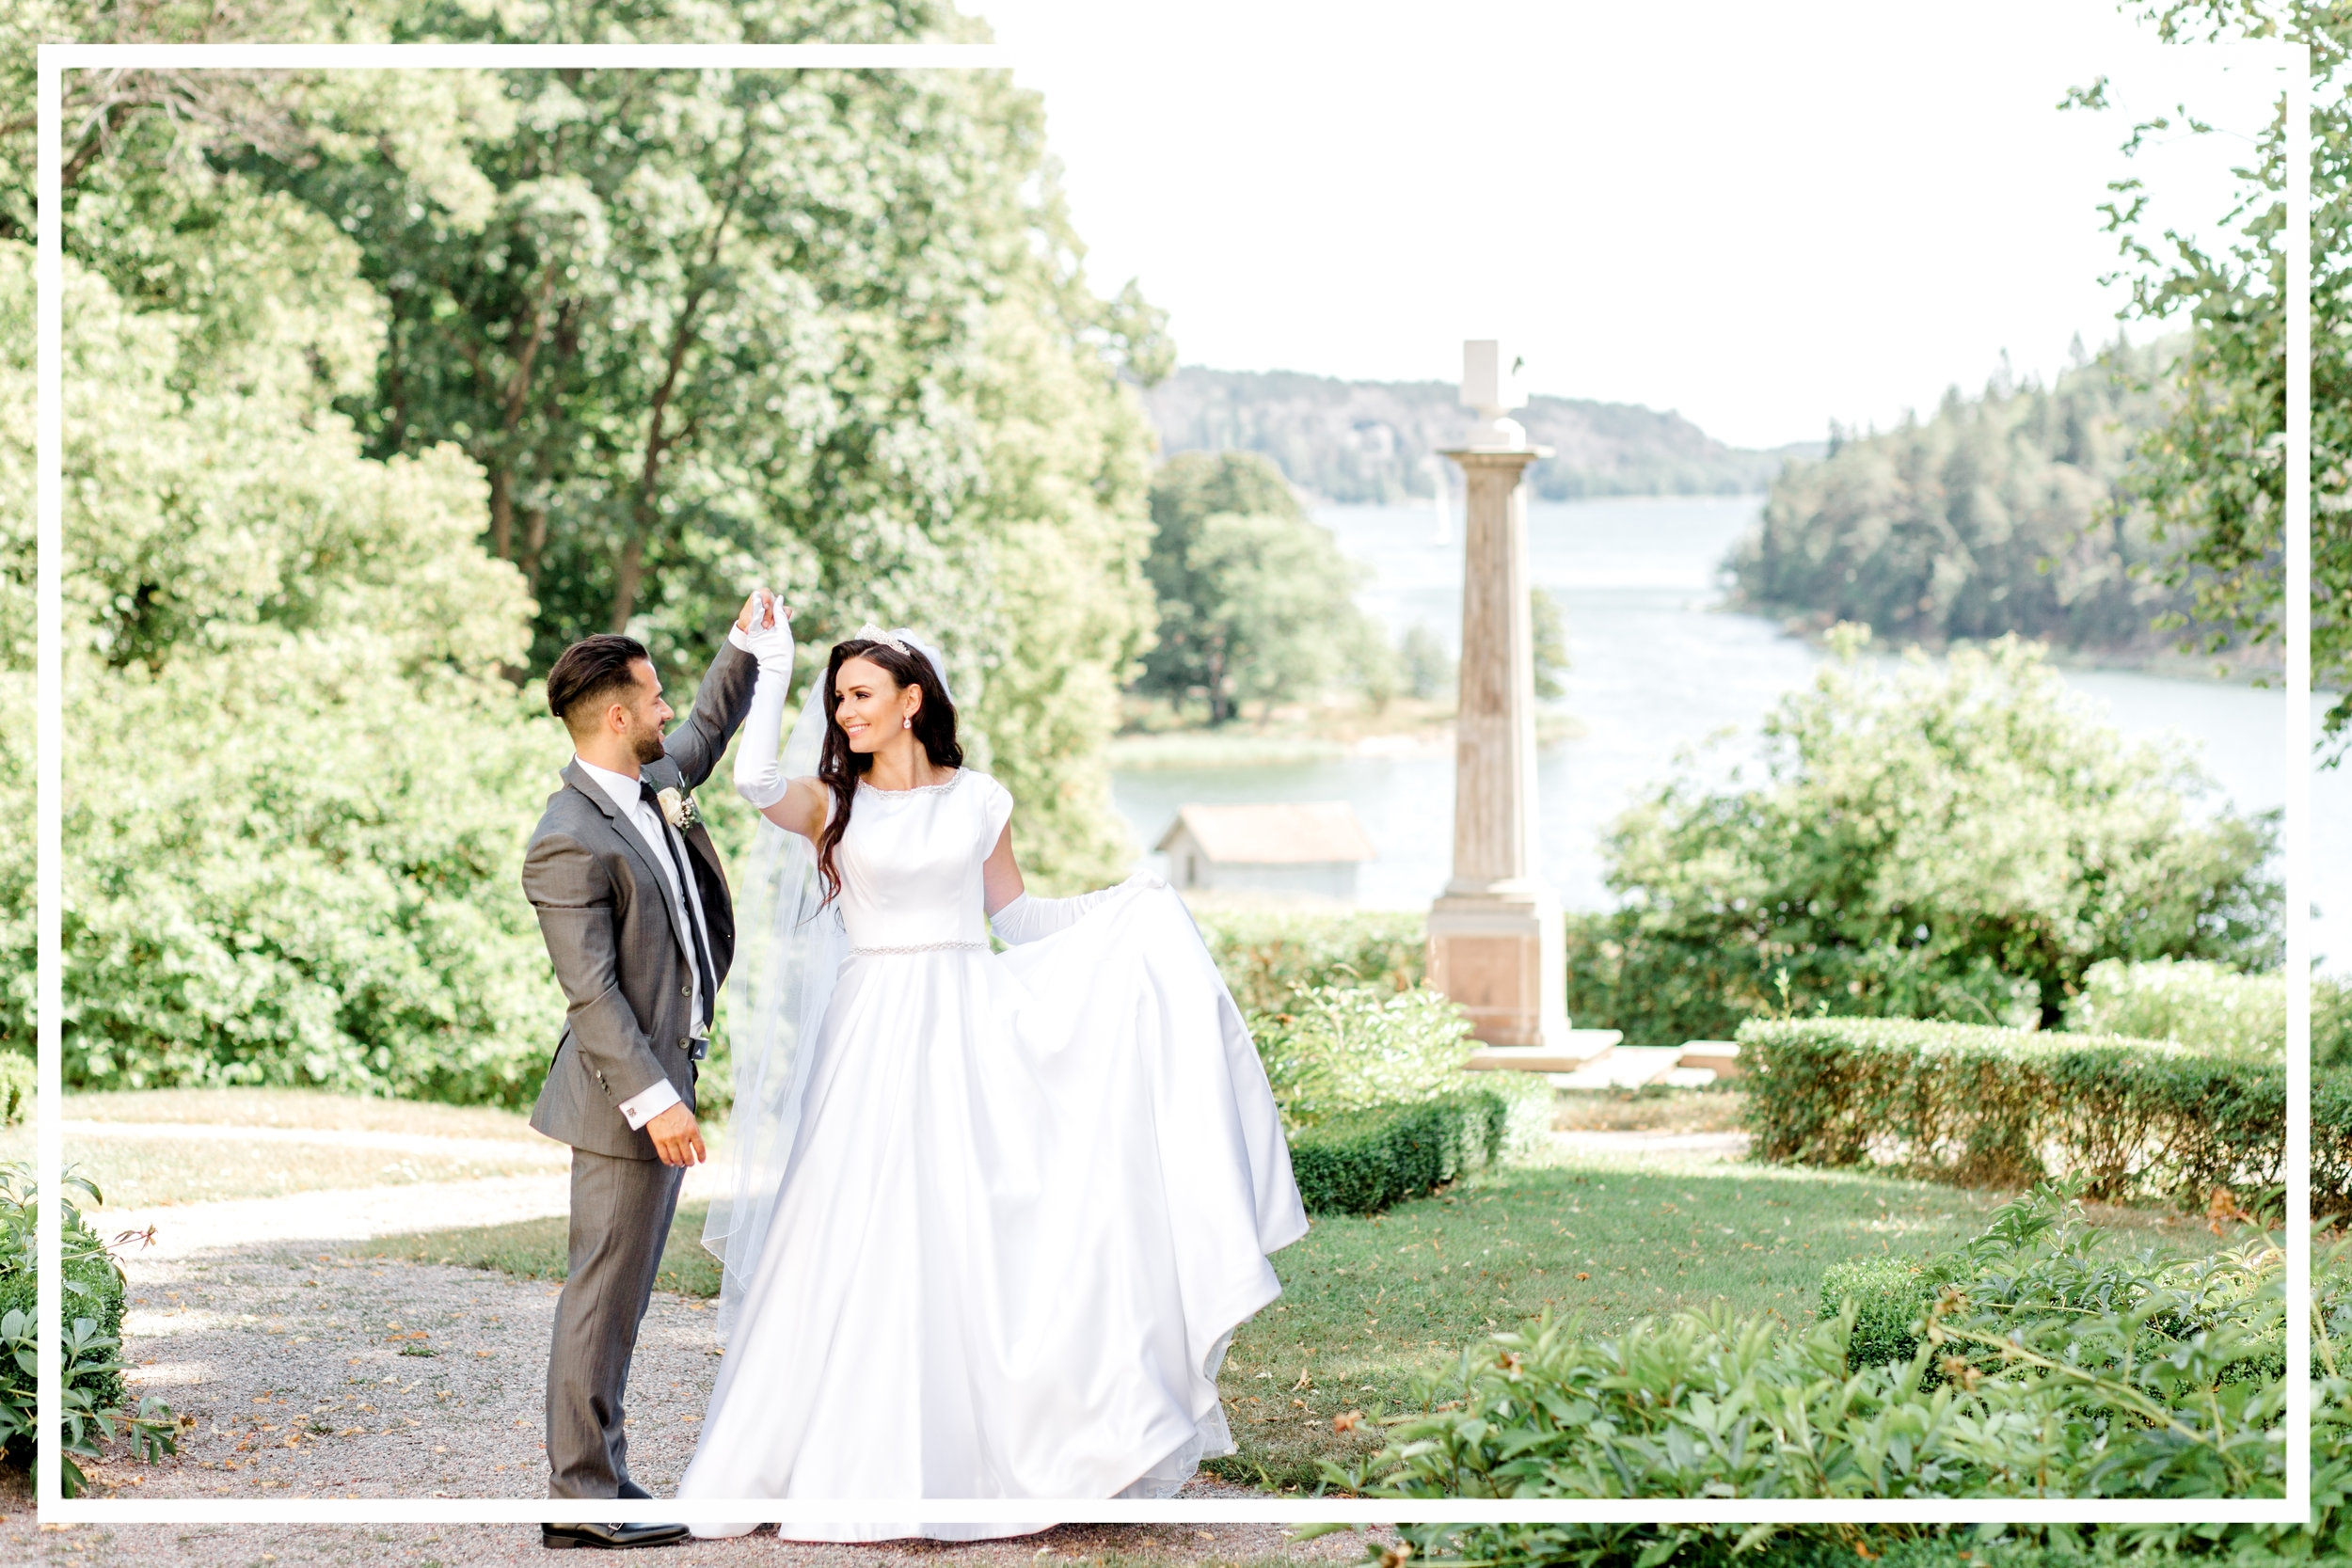 Shailee & John International Swedish Wedding Tyreso Slott Palace Sweden